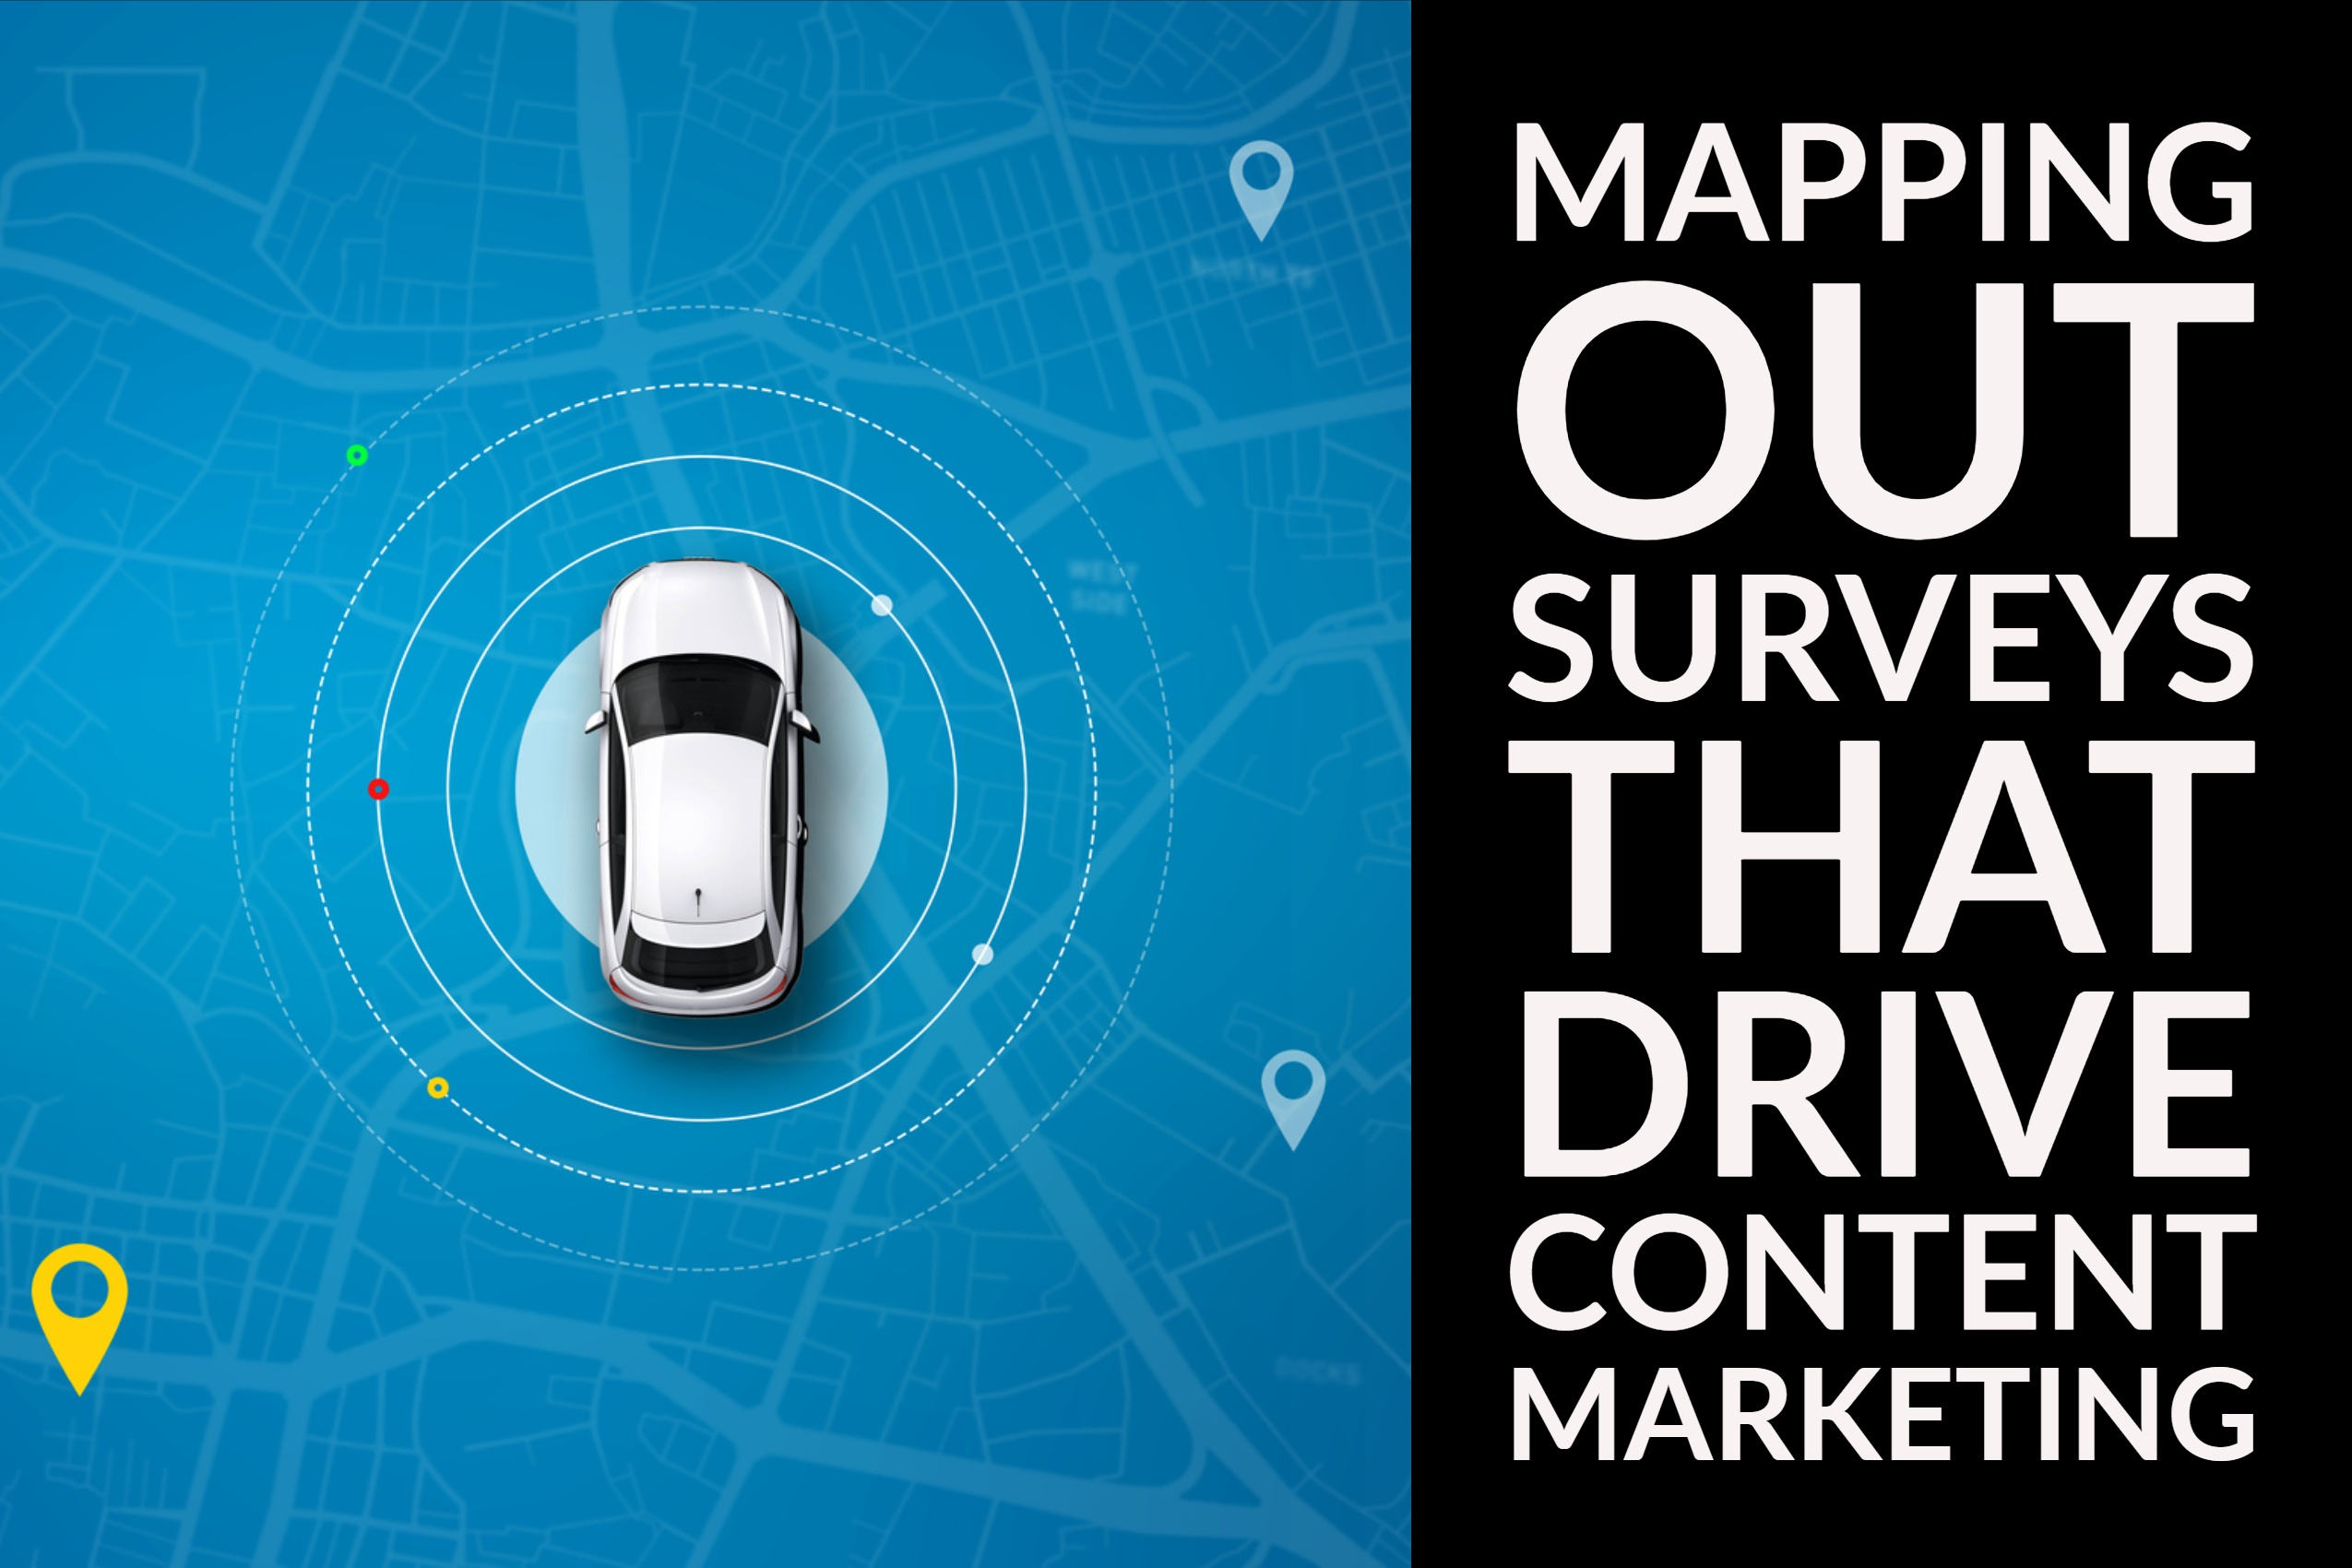 Mapping Out Surveys That Drive Content Marketing